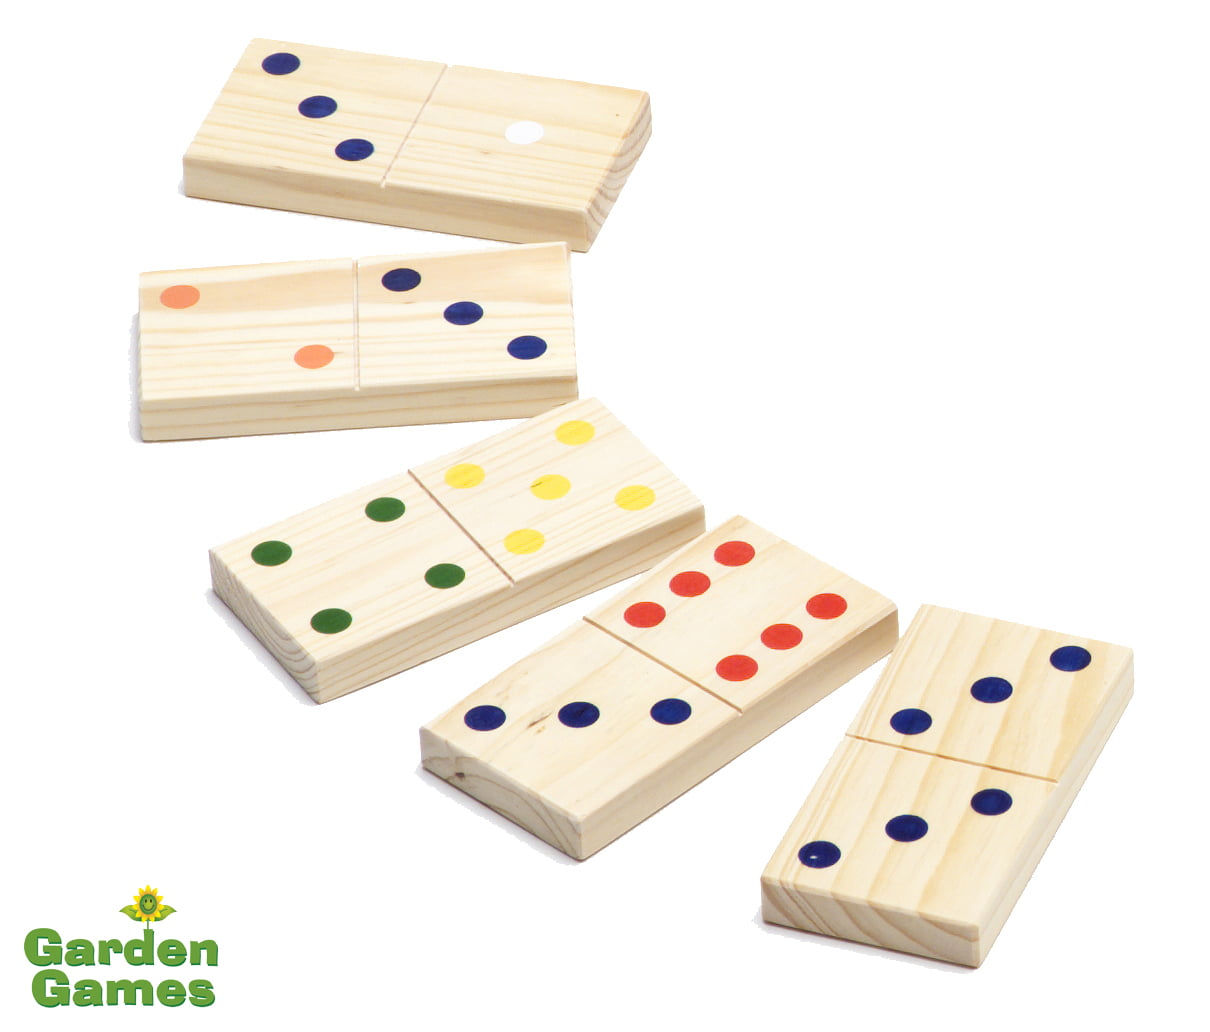 Adventure Zone Toys Garden Games Giant Dominoes